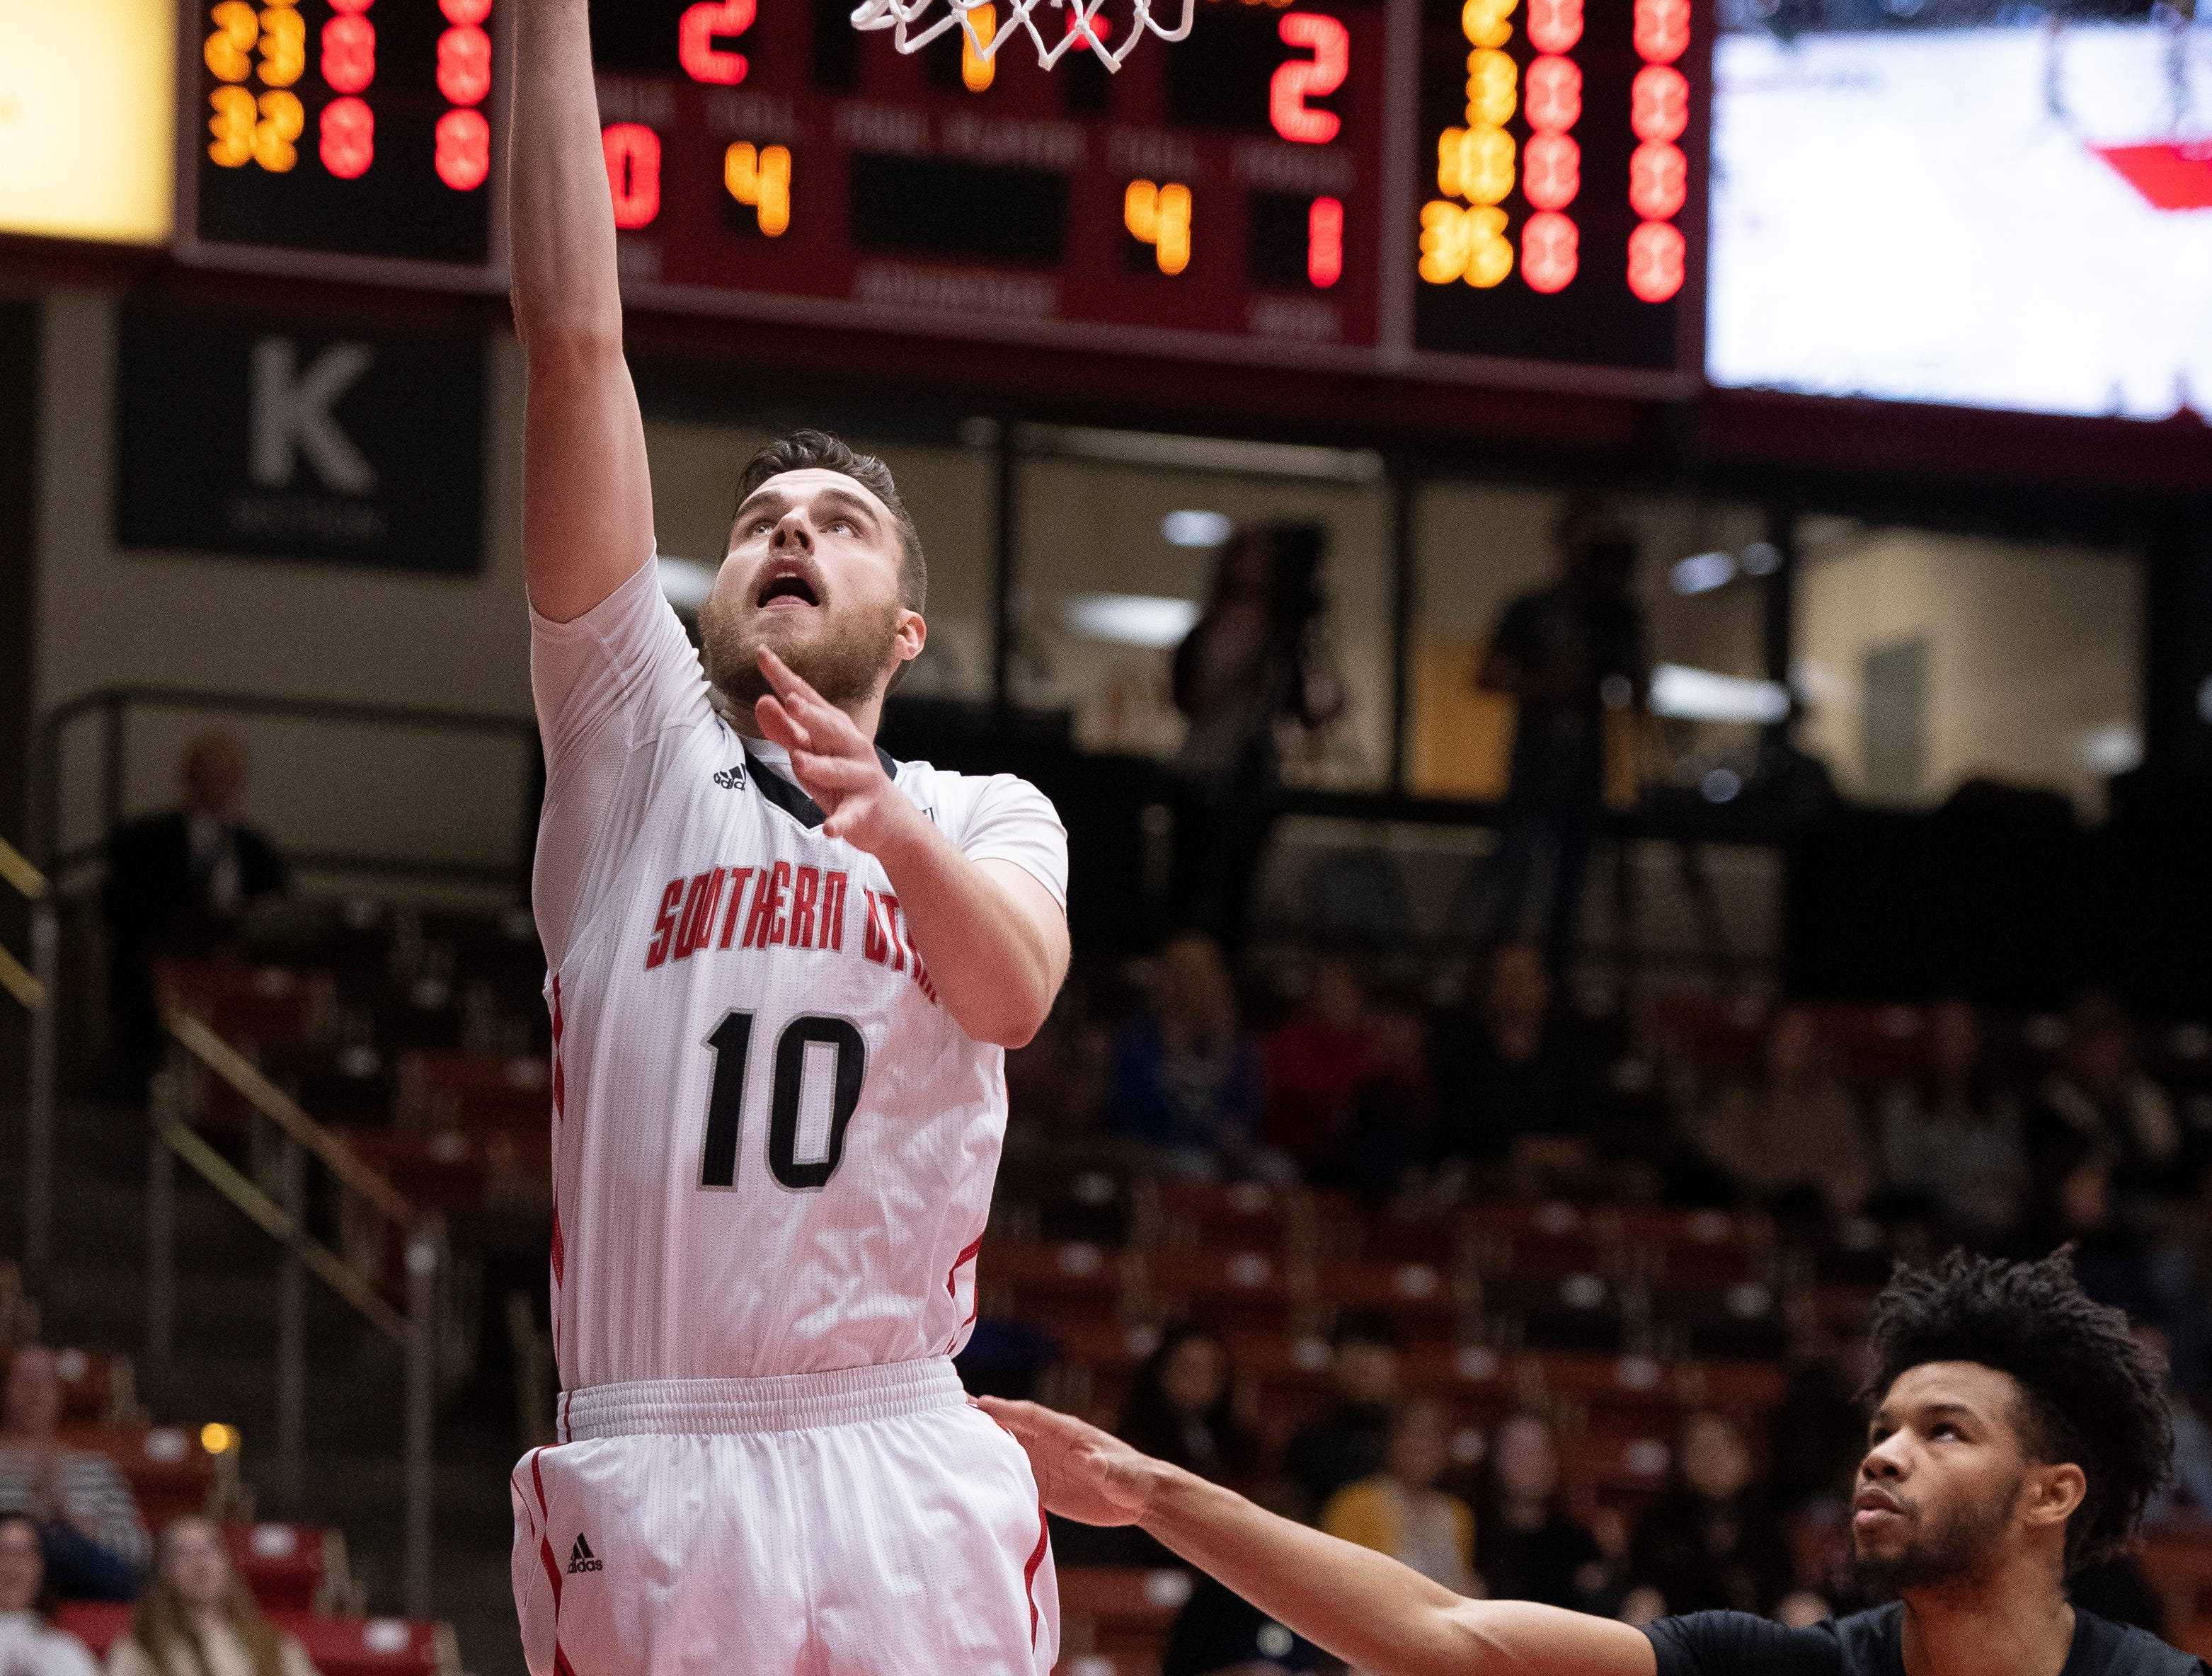 Southern Utah University junior Jacob Calloway (10) scores a basket against Portland State in the America First Event Center Thursday, January 17, 2019. SUU won, 83-69.